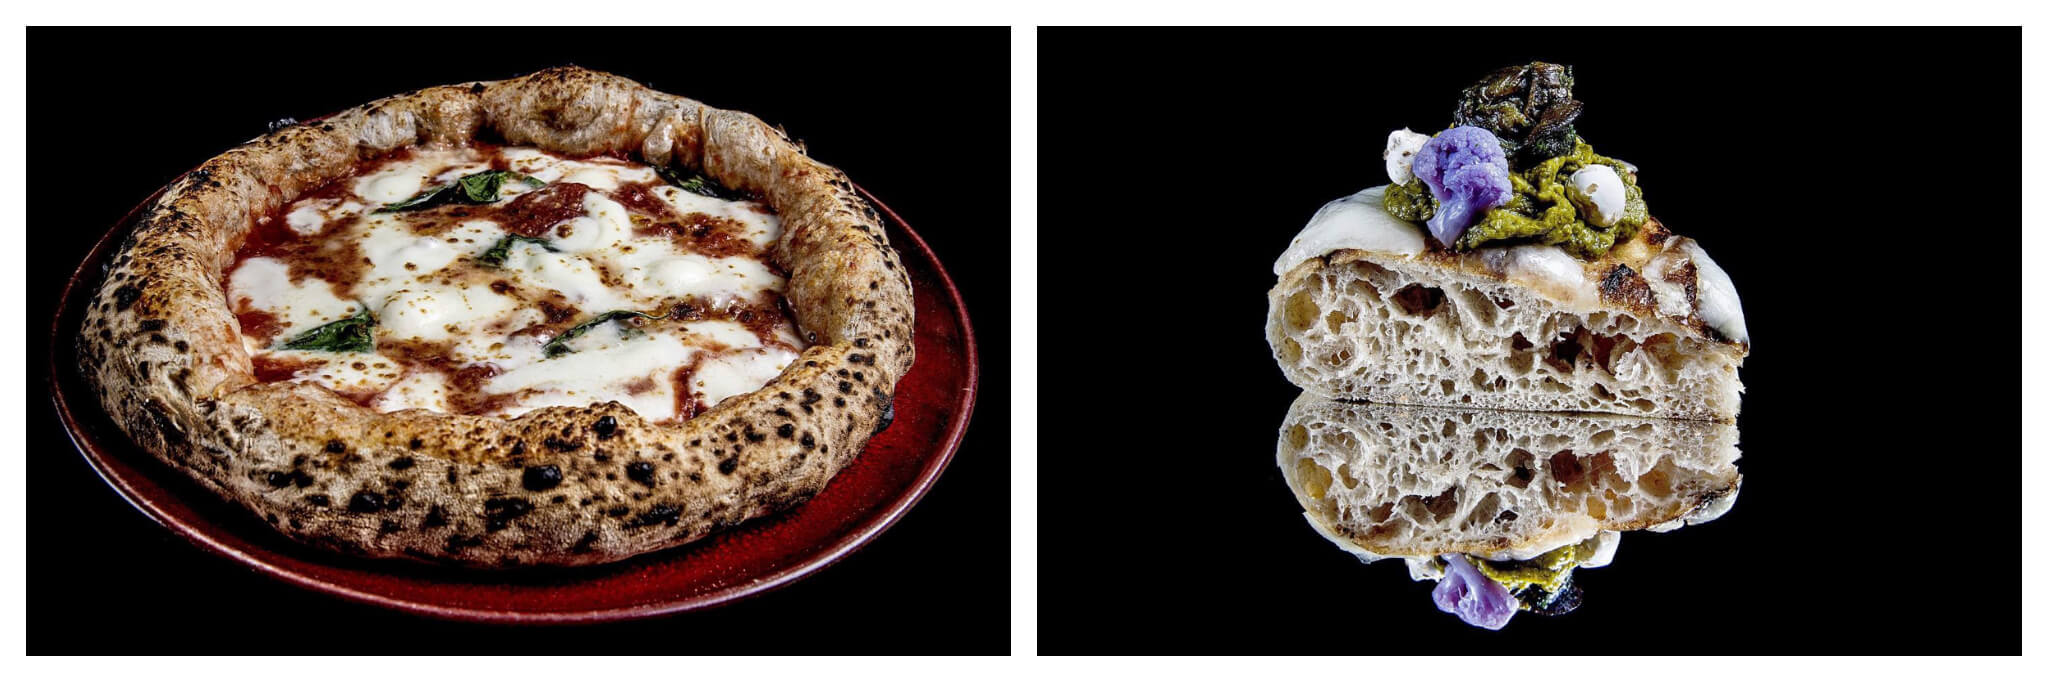 Left: a margarita pizza on a red plate with a black background. Right: a slice of thick dough pizza with a green pesto and purple broccoli topping on a black background.